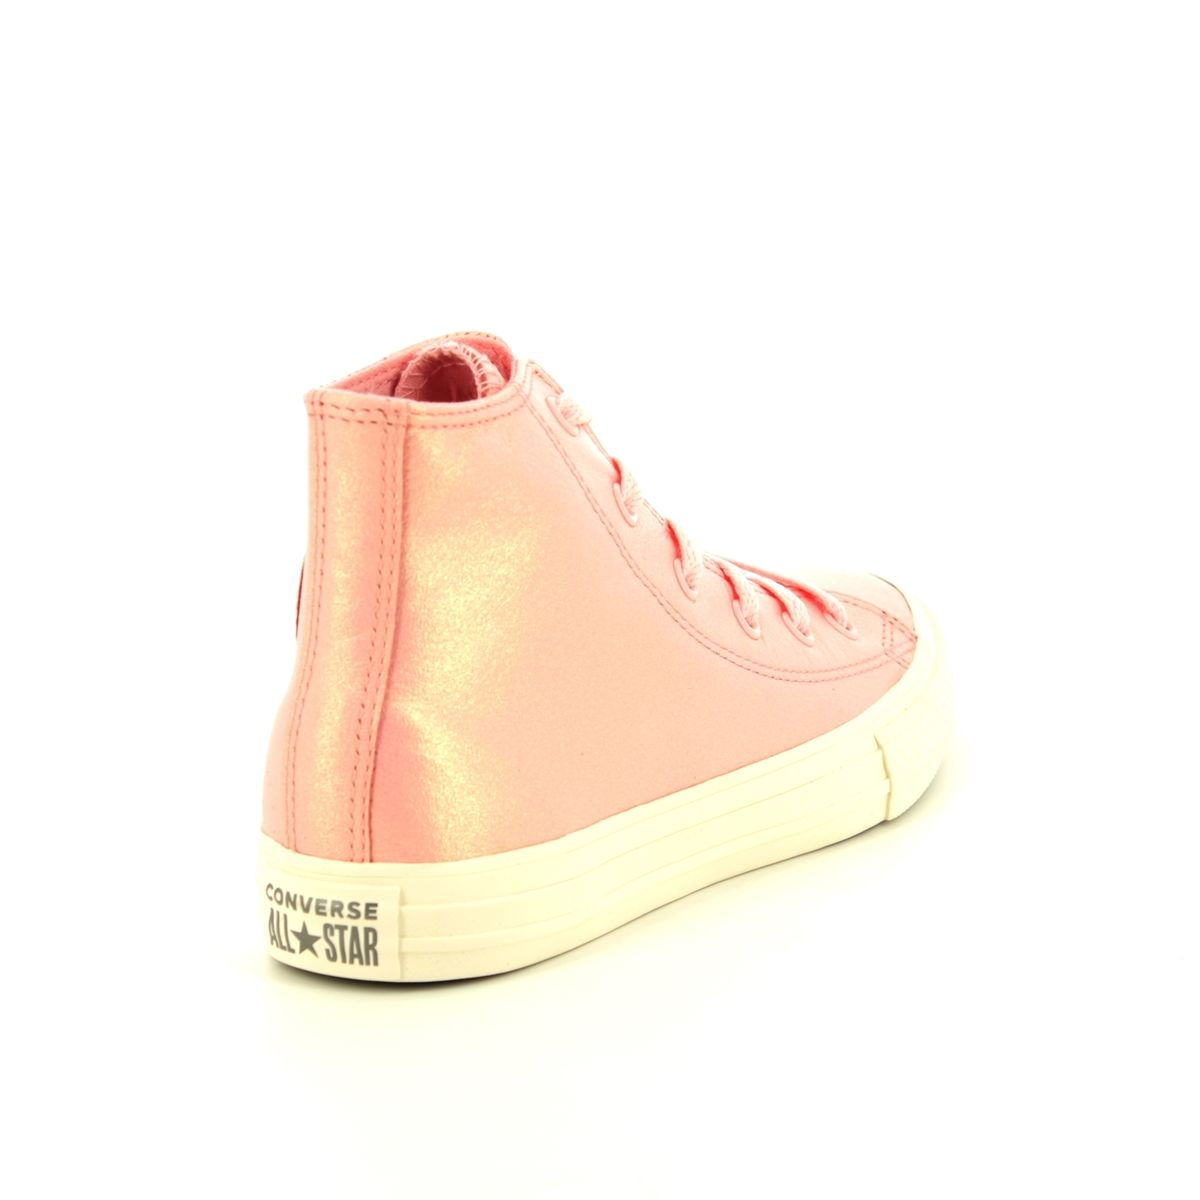 Converse Allstar Hi Top 661827C Pink Leather trainers 744913bcc2cd4